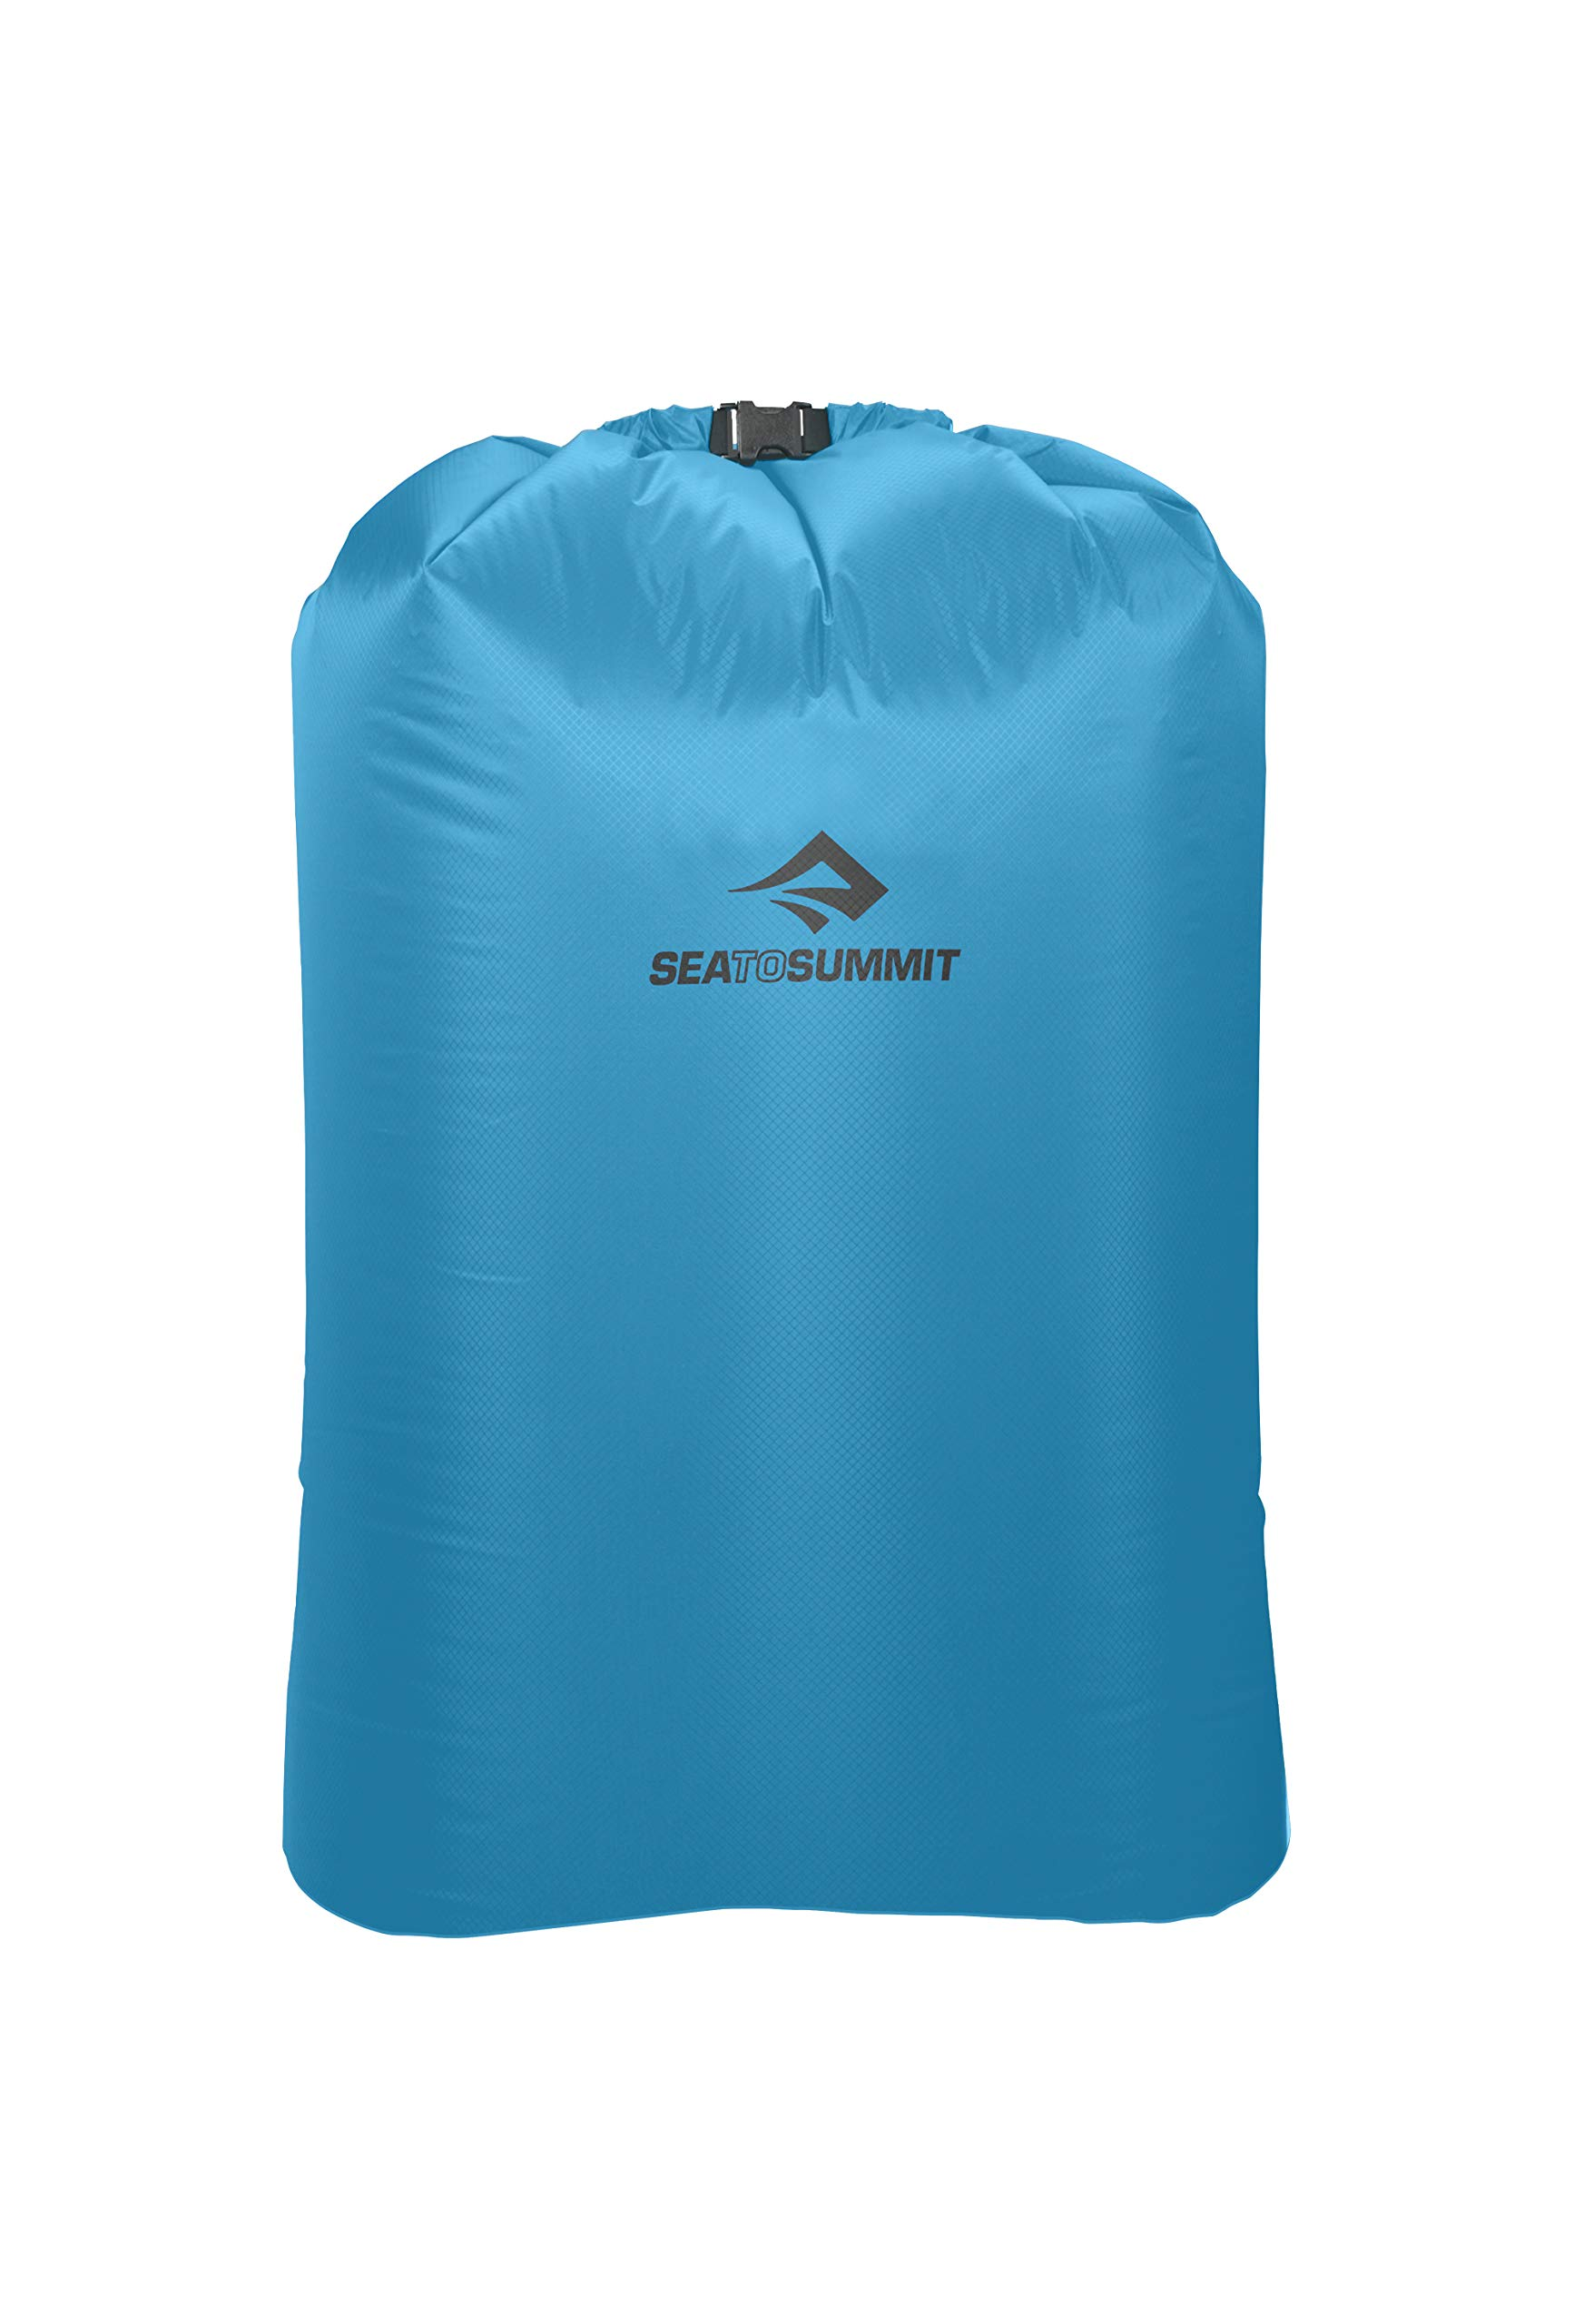 Sea to Summit Ultra-SIL Pack Liner, Pacific Blue, Small by Sea to Summit